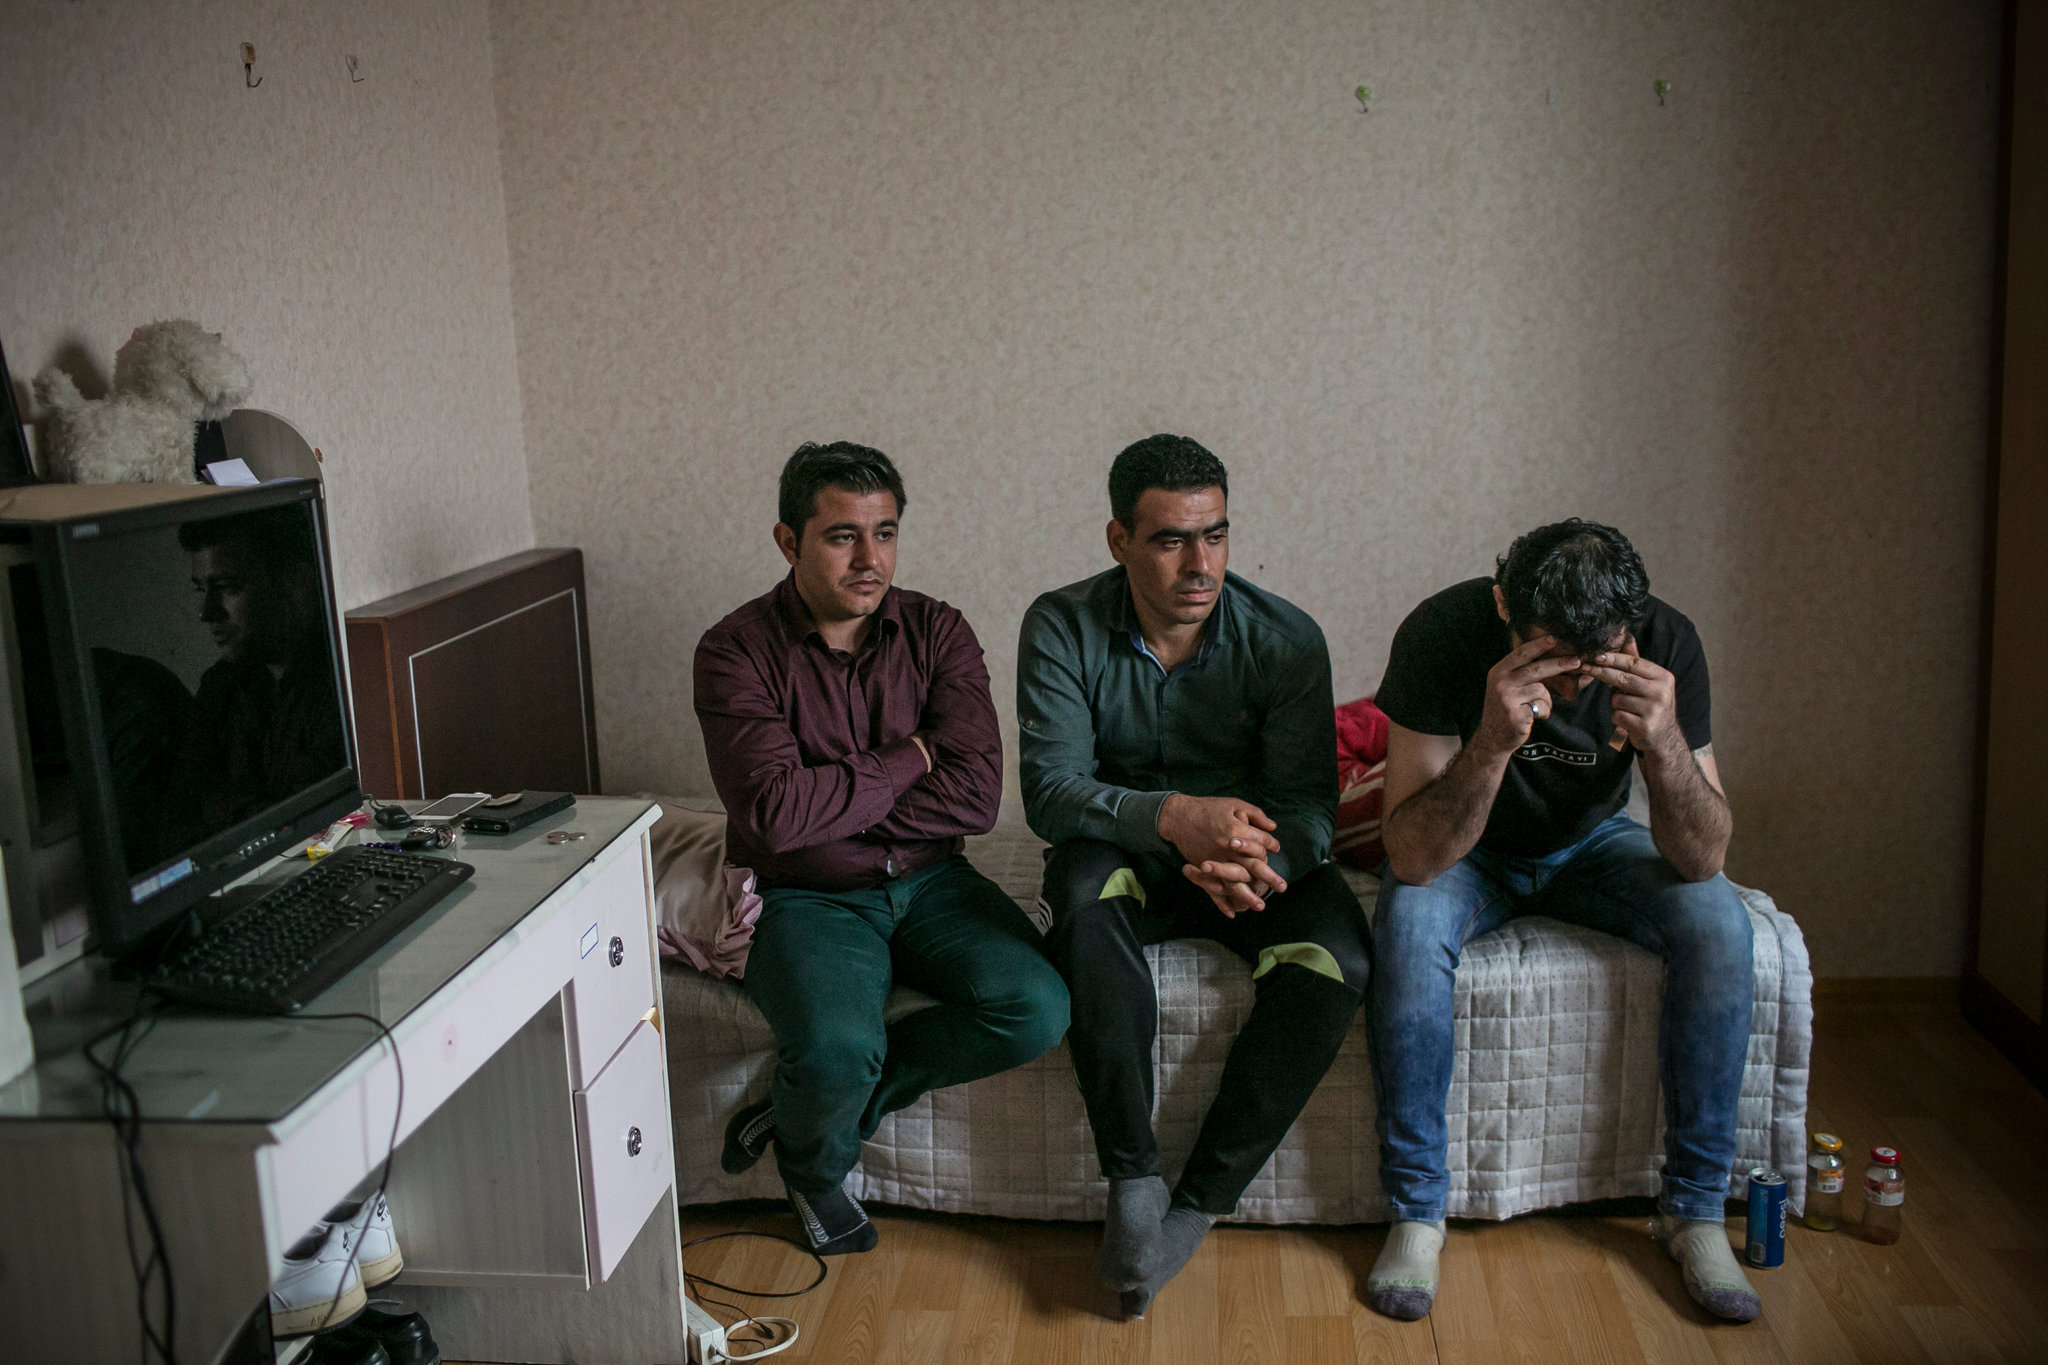 Ahmad Barro, left, Ahmad al-Othman and Ahmad Khalifa last month in Yangju, South Korea. The men, all from Syria, expressed frustration as they talked about family members left in Aleppo. Credit - Jean Chung for The New York Times.